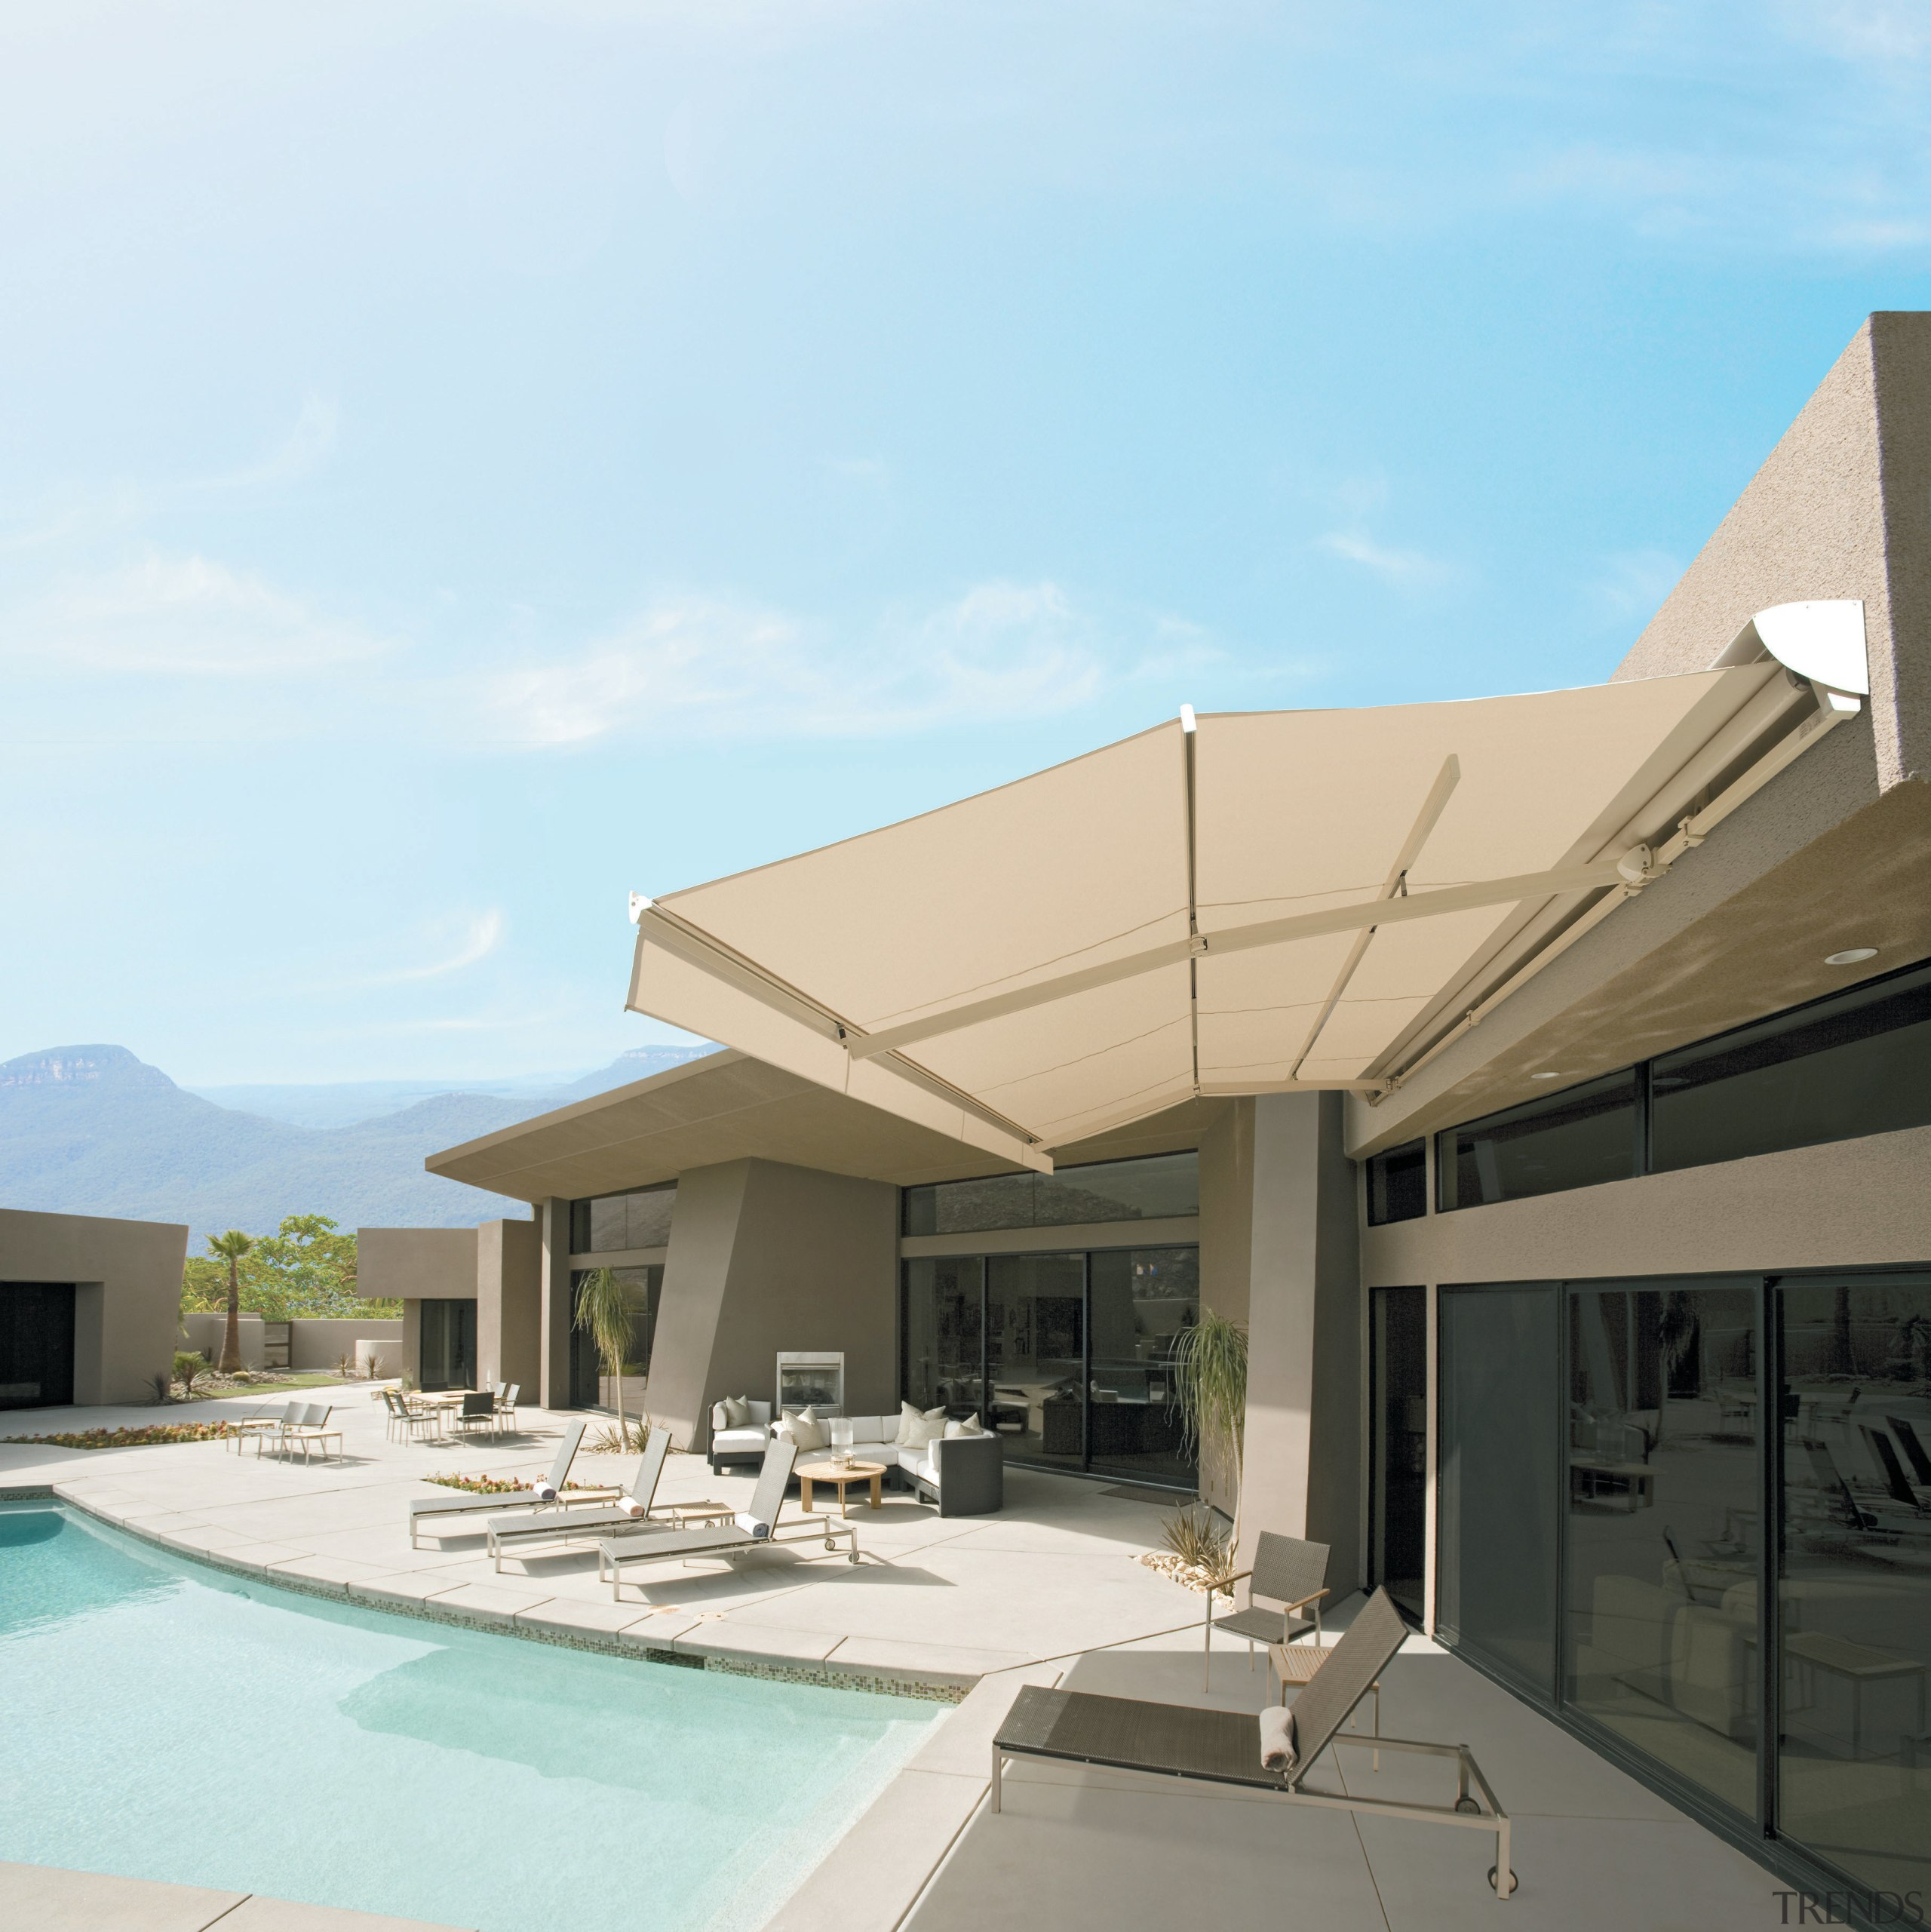 View of an outdoor area which features a architecture, condominium, elevation, estate, home, house, property, real estate, residential area, roof, shade, white